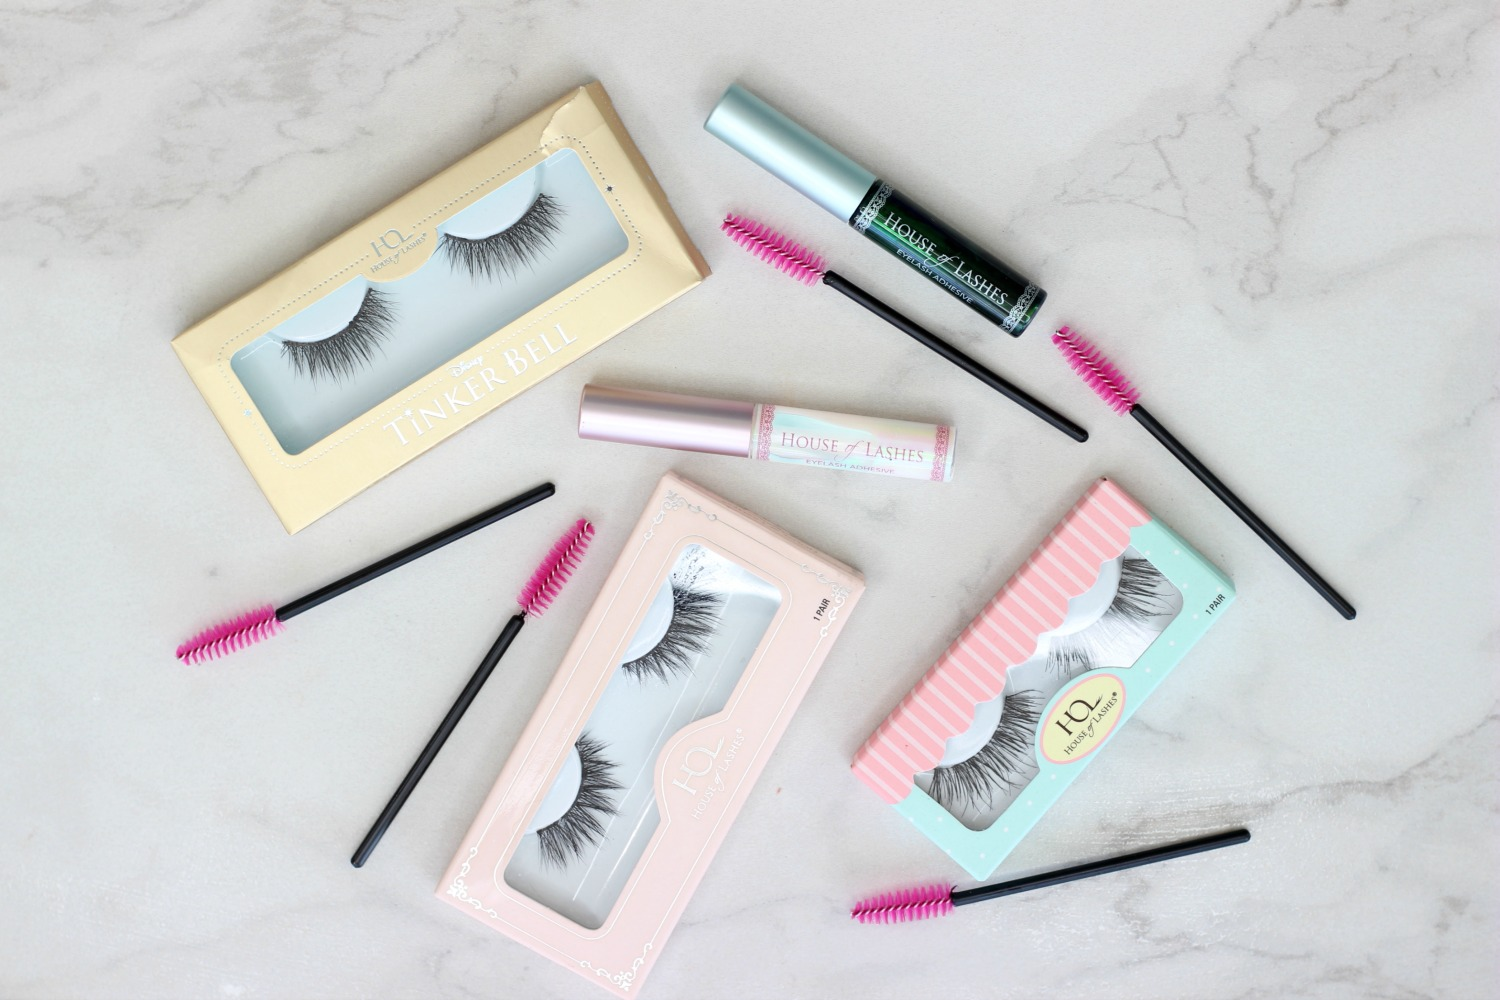 Trying Out House of Lashes Iconic Lite Pixie Luxe and Temptress Wispy Lashes